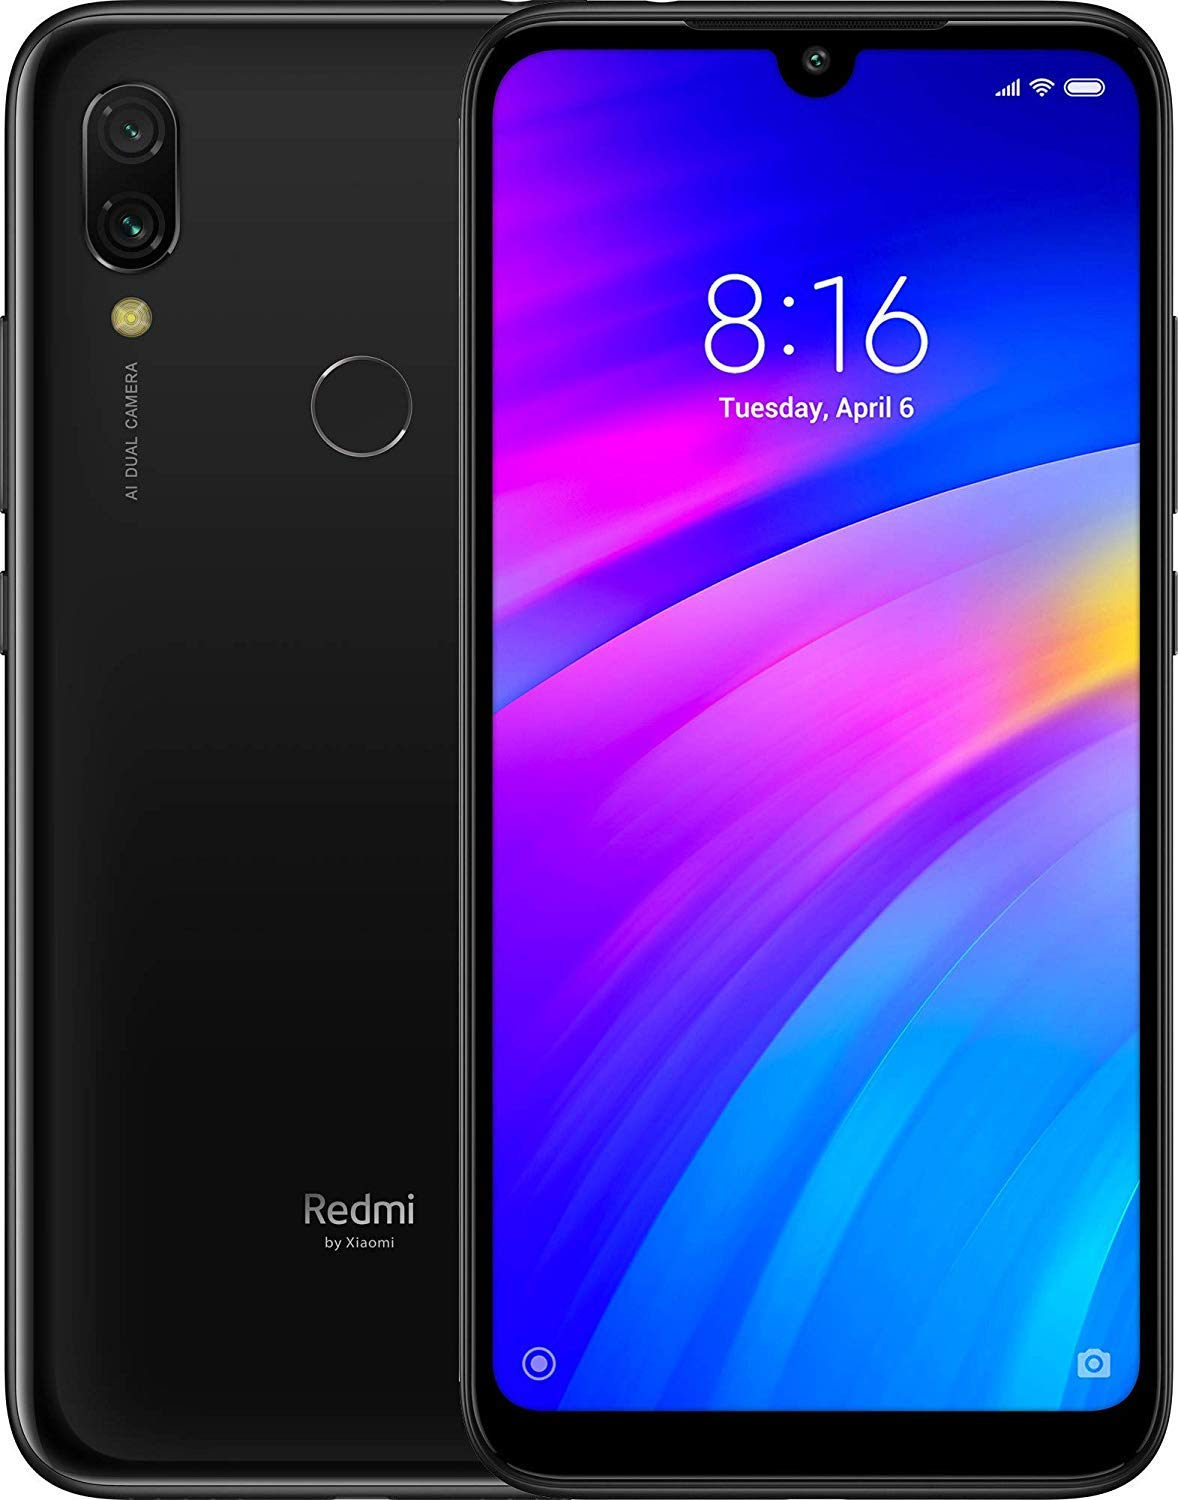 Xiaomi Redmi 7 Dual SIM - 32GB, 3GB RAM, 4G LTE, Black Global Versia